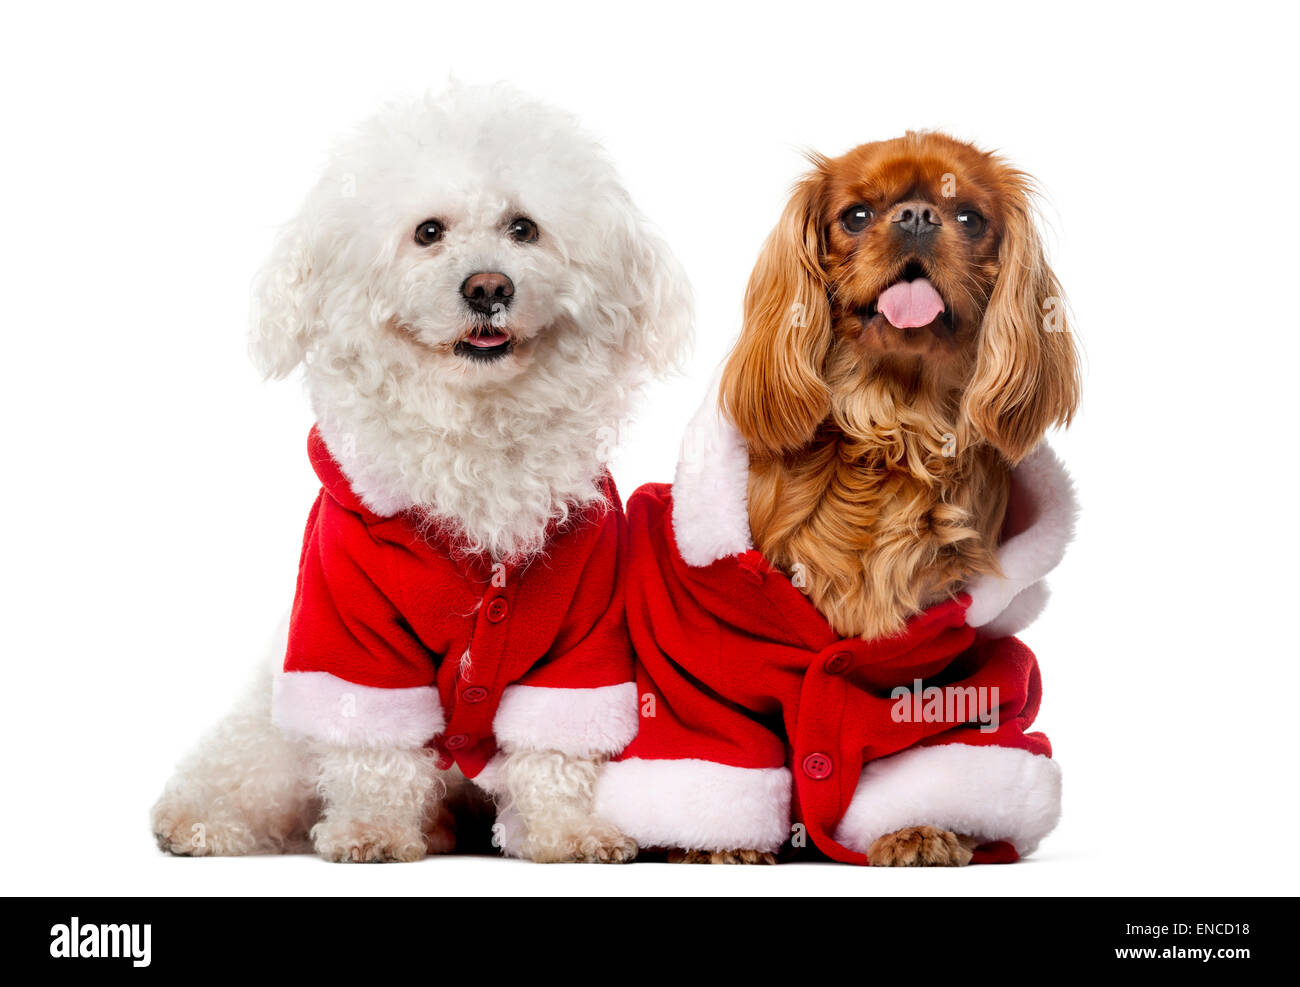 Maltese (4 years old), Cavalier King Charles Spaniel (2 years old) in front of a white background - Stock Image